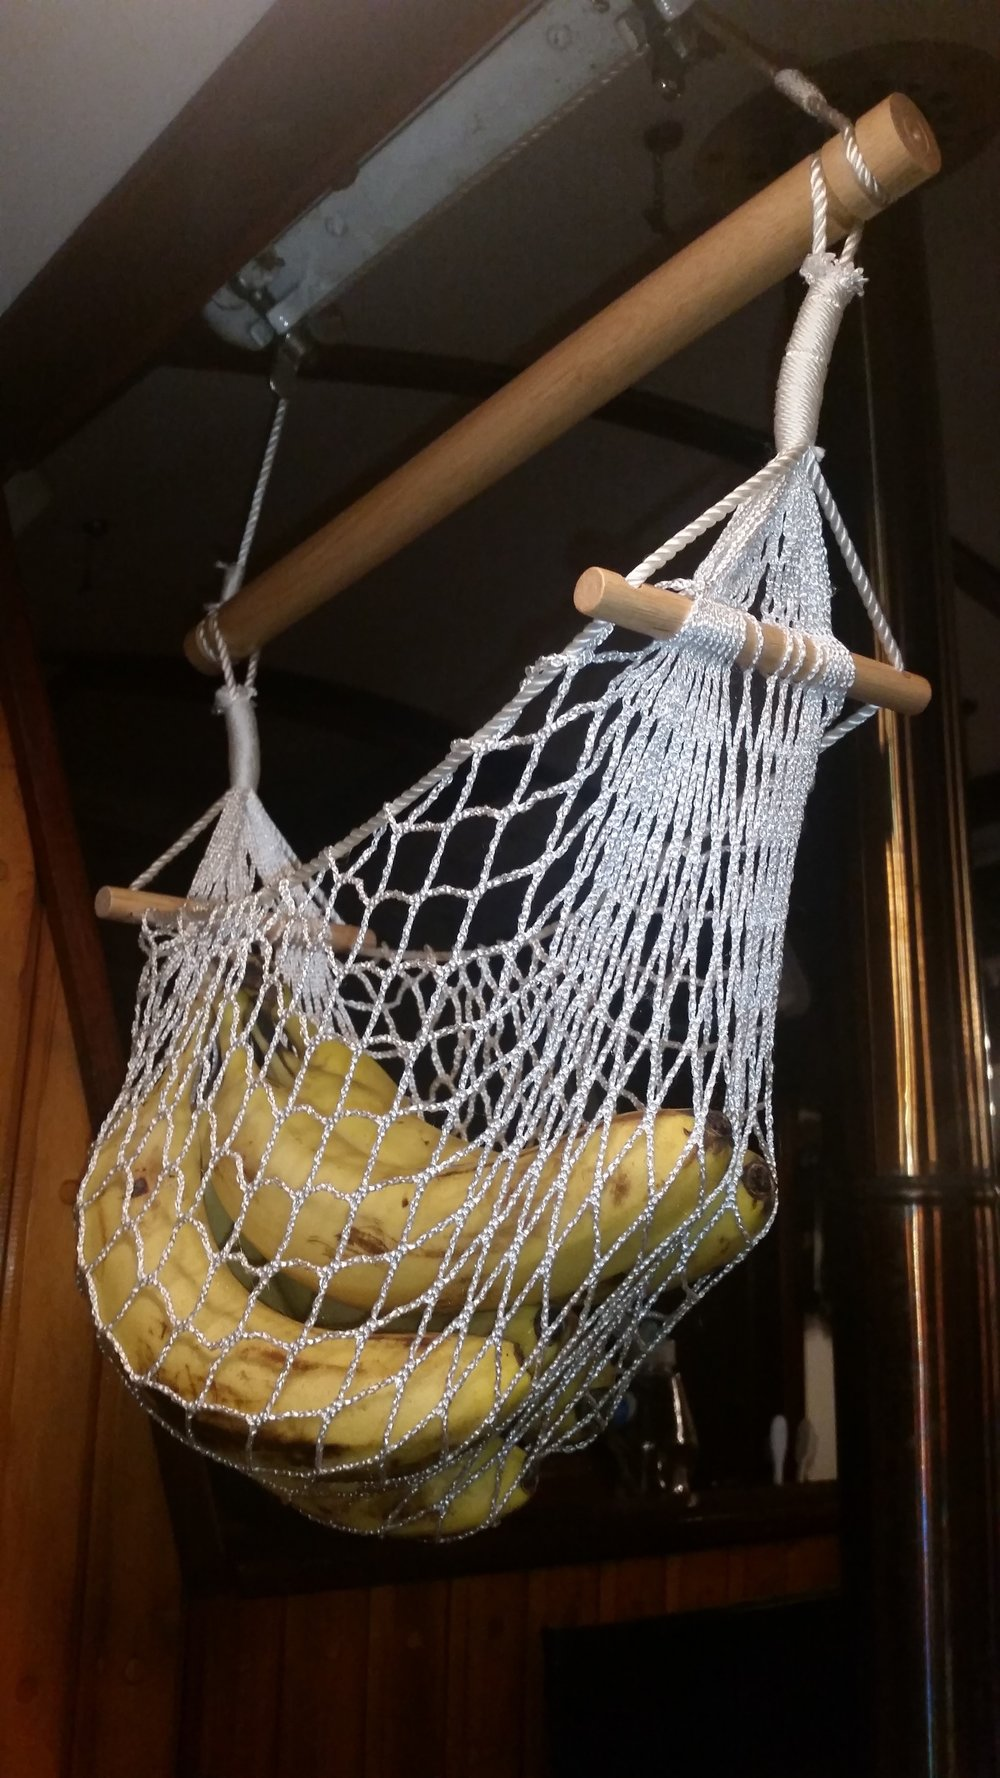 bananas can be hard to store on a sail boat  they bruise easily and need to be kept with plenty of fresh air  a fruit hammock can resolve most of these     banana hammock  u2014 rigging doctor  rh   riggingdoctor